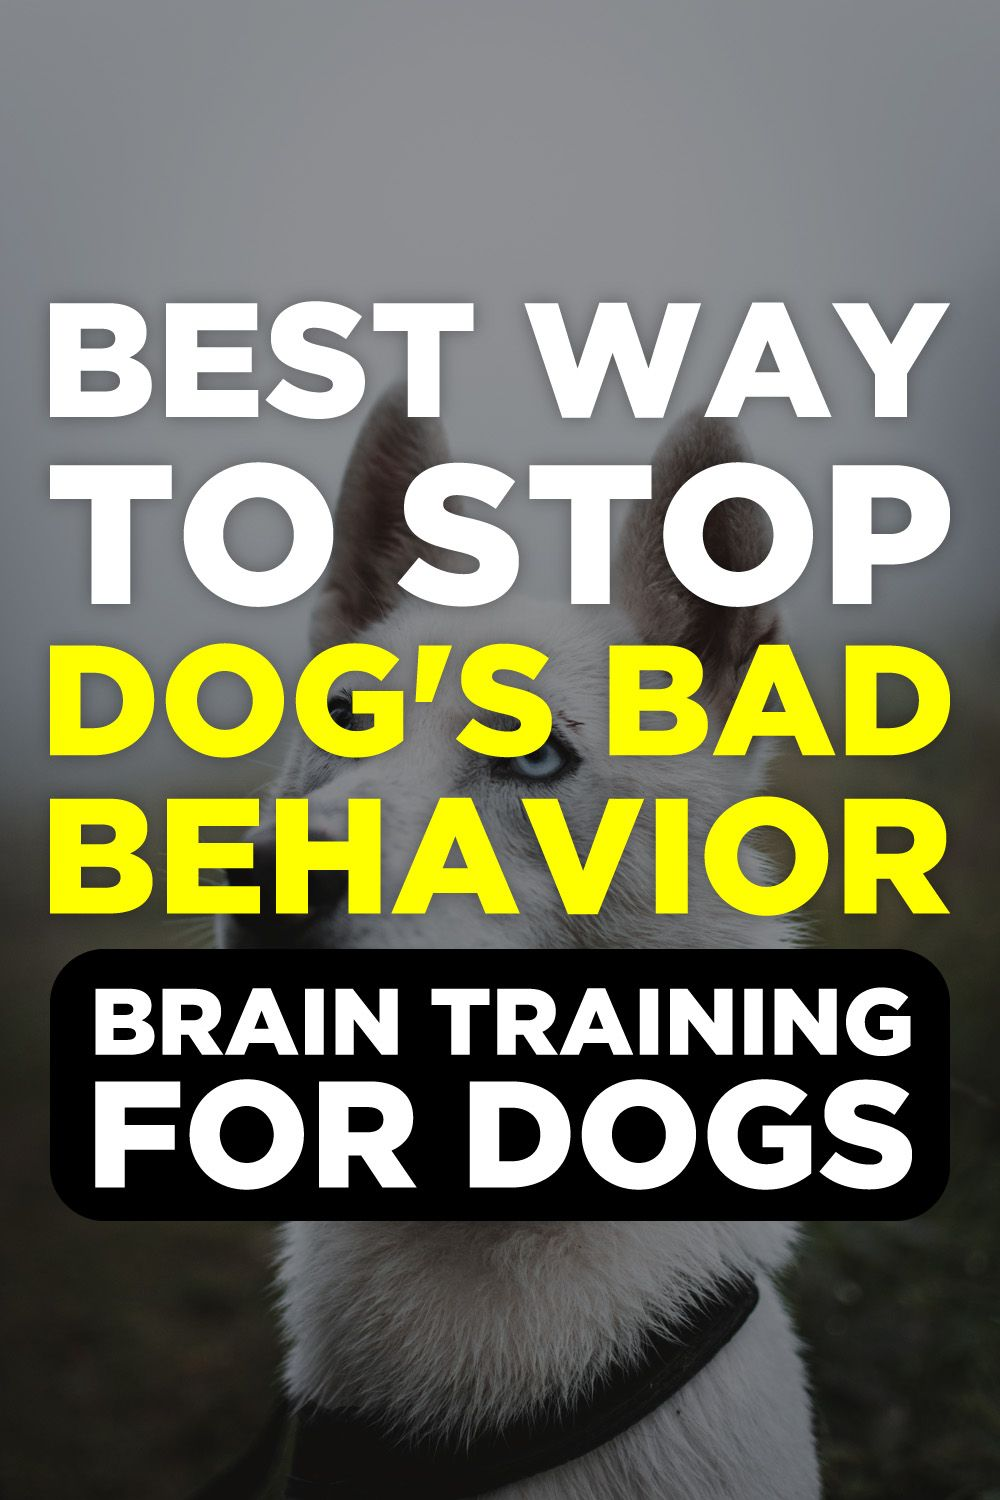 Brain Training For Dogs Review Dog training videos, Dog